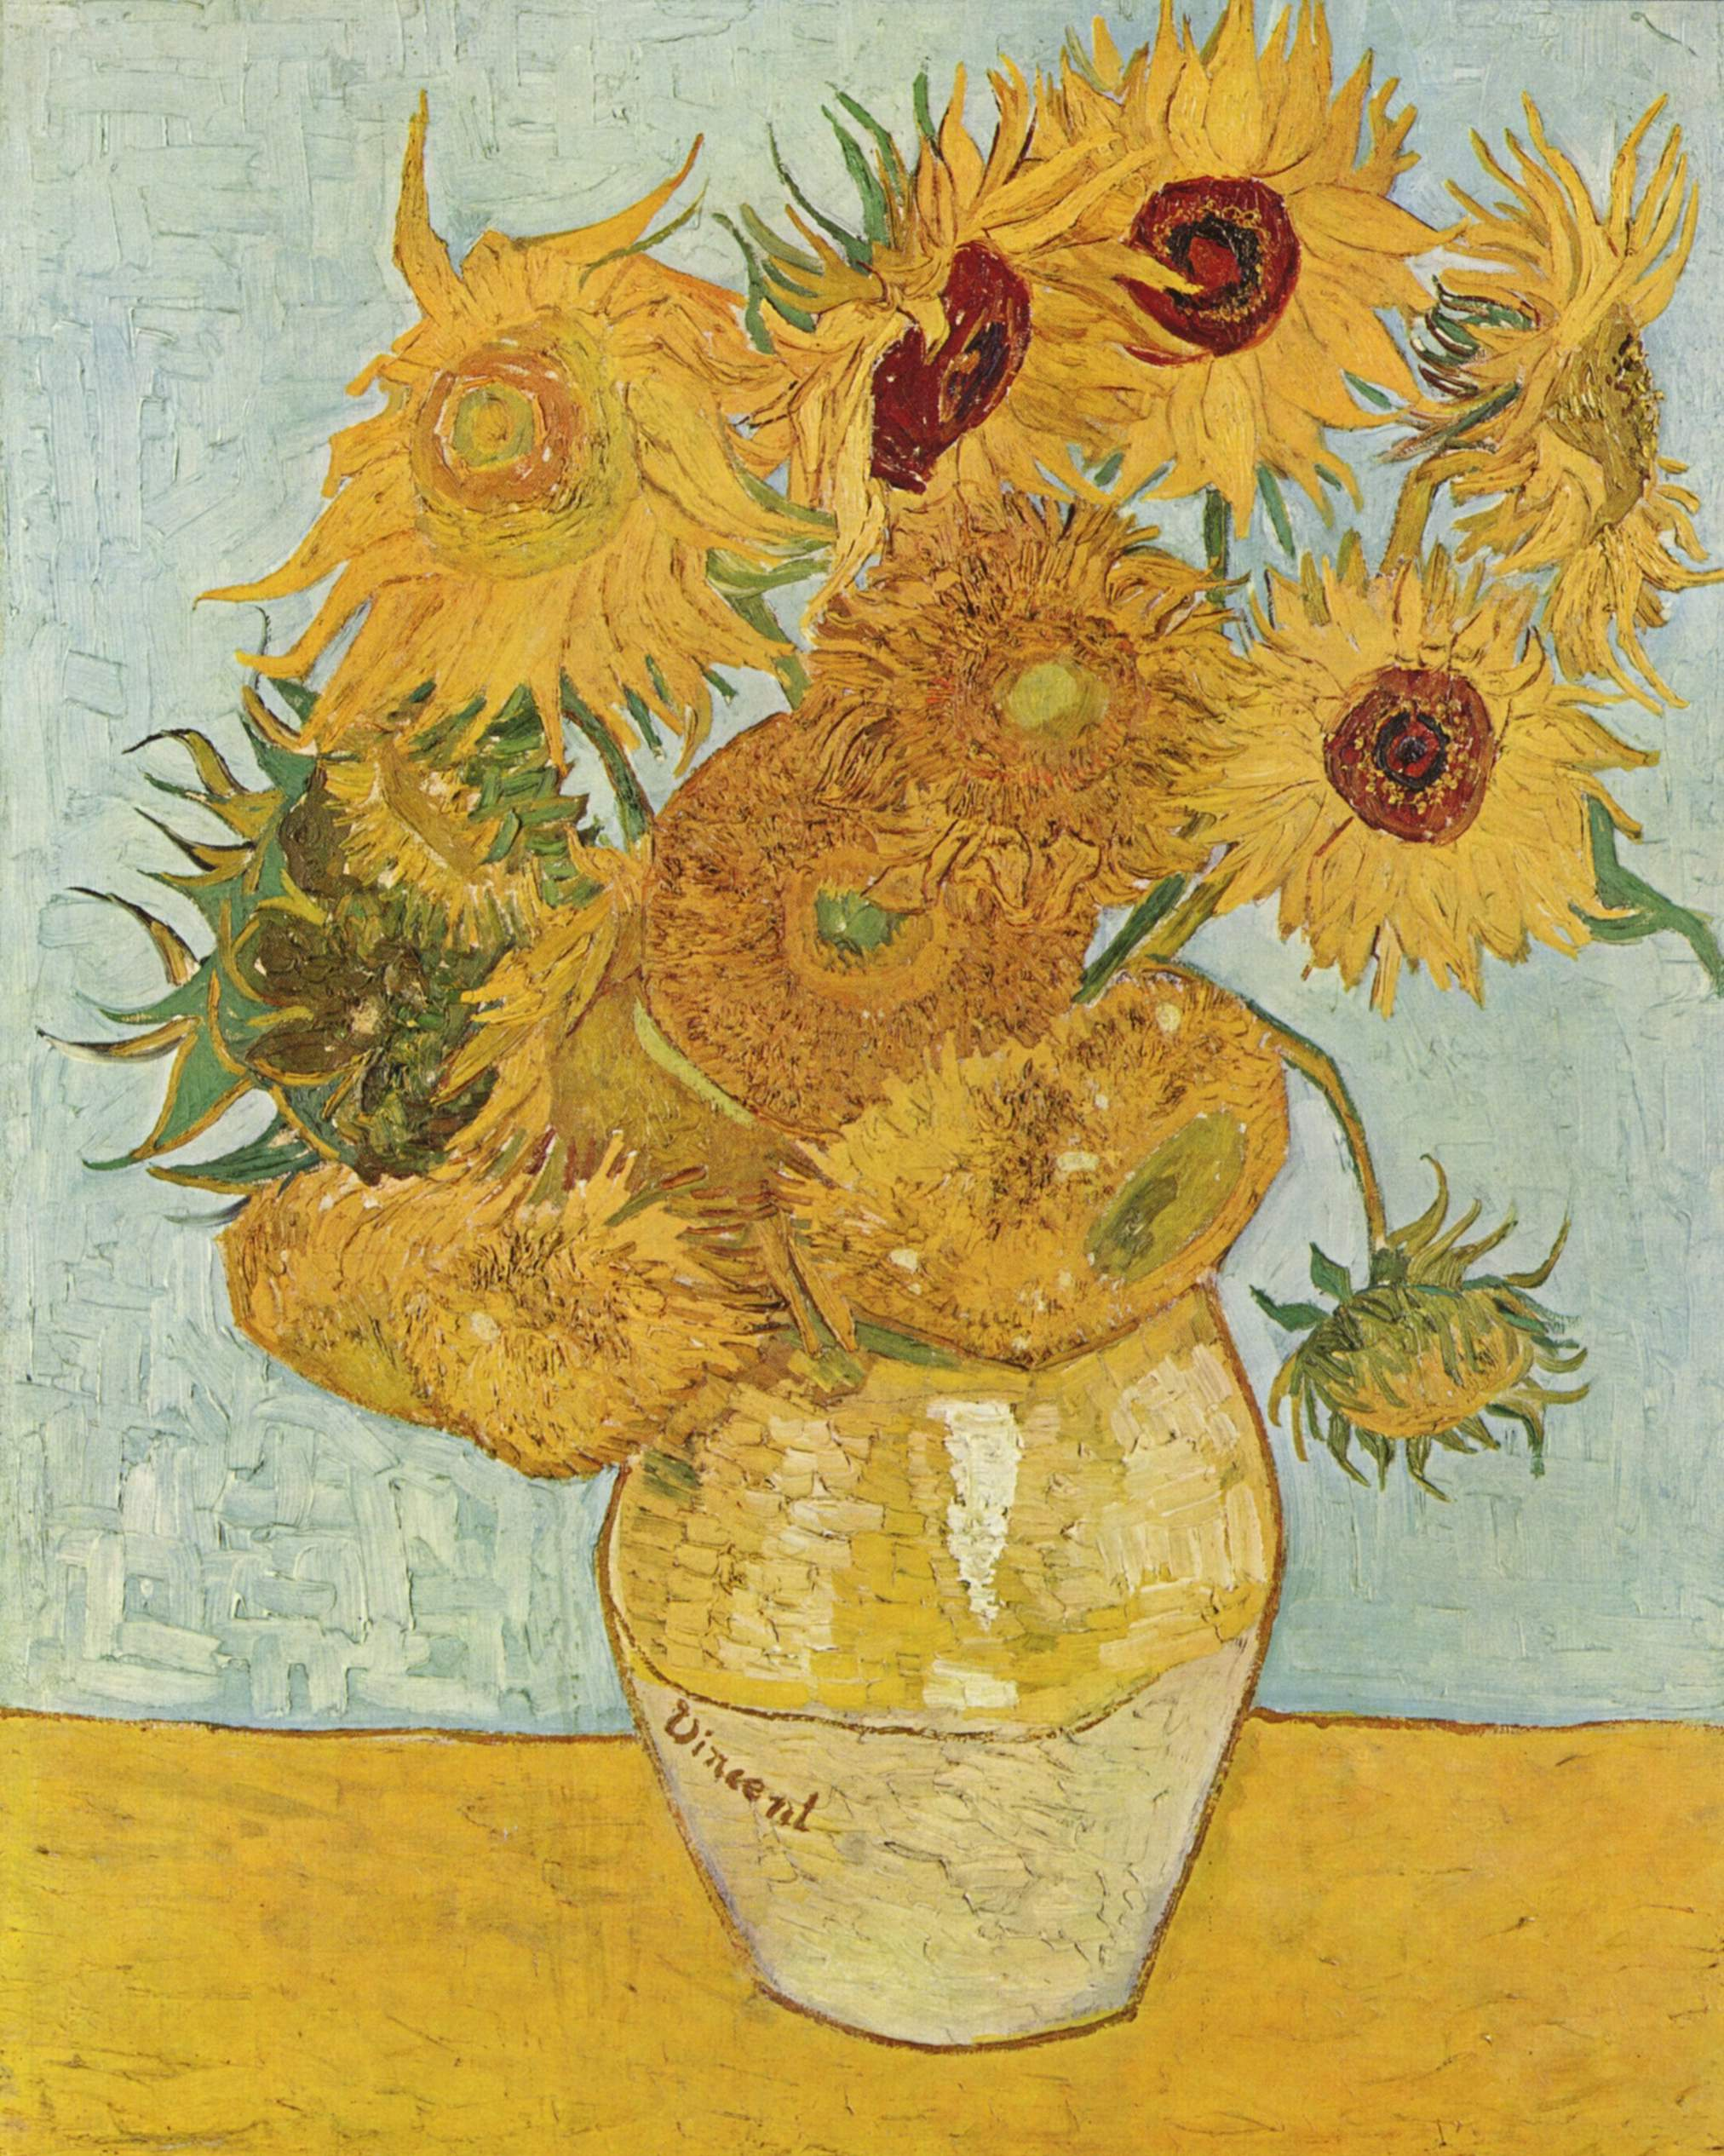 Van Gogh's true colours were originally even brighter | Art and ...van gogh